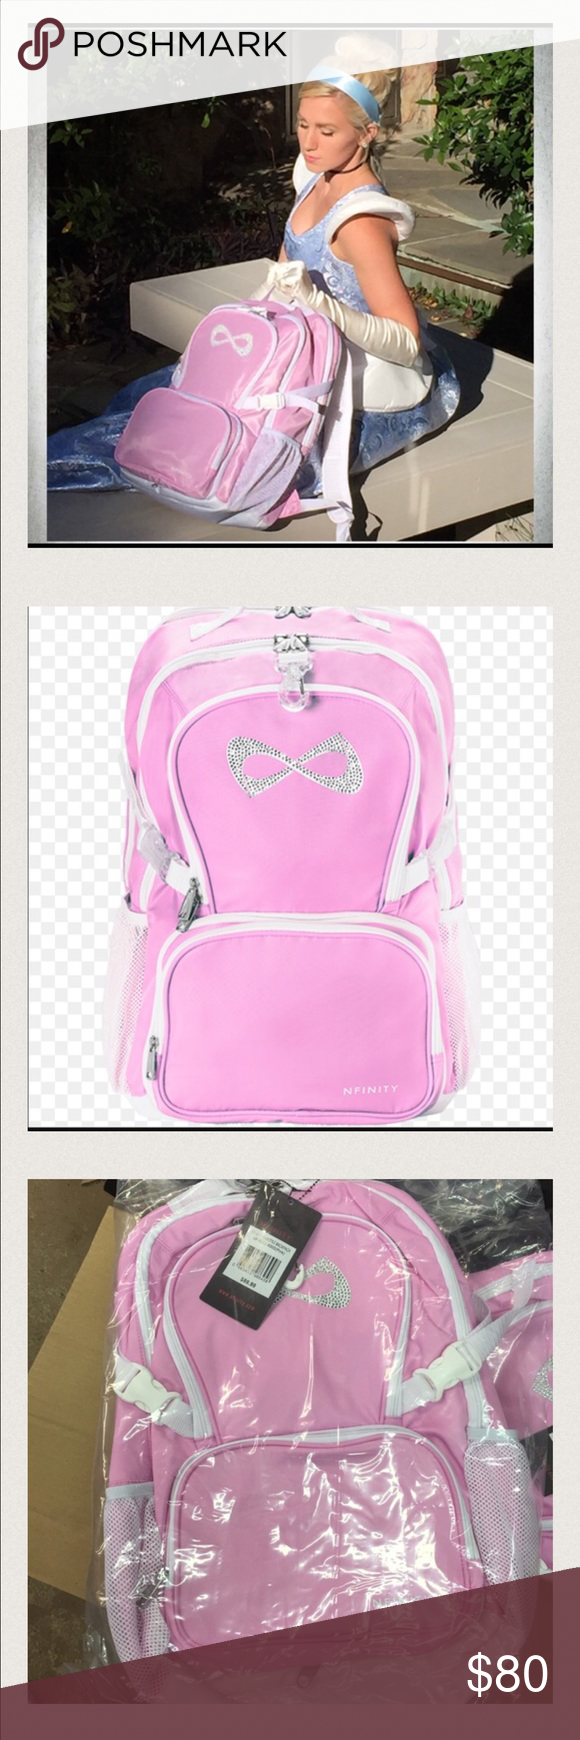 Princess backpack tonight sale Be the princess you know you are   ●   Lightweight 100% Nylon material  ●   Princess pink color  ●   Rhinestone sparkle logo  ●   Air-mesh padding on back for increased comfort and breathability  ●   Large interior design with 3 compartments and a padded laptop sleeve  ●   Detachable front pouch converts into a handy purse  ●   Multiple areas for embroidery and team customization  ●   Top Grab Handle  ●   Two water bottles   ●   White Nfinity® Logo interior…